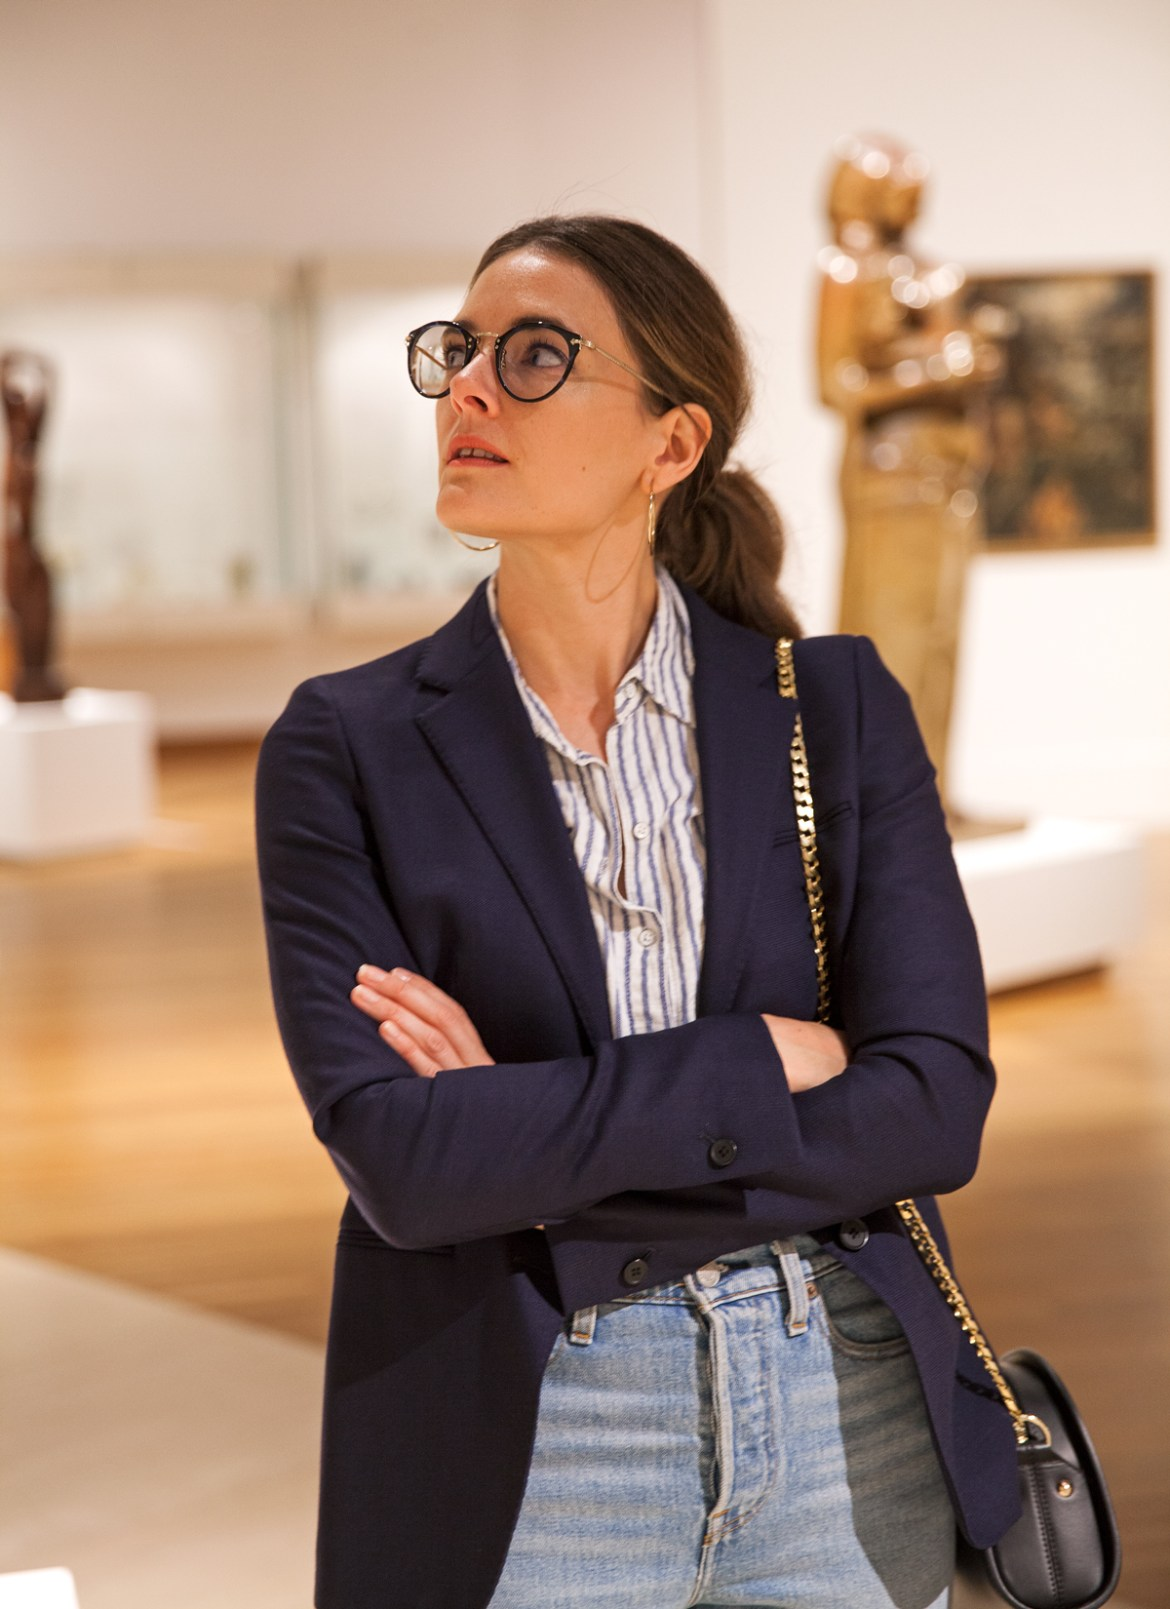 Essilor Transitions Colours Lenses worn with navy blazer, Levi's jeans by Inspiring Wit blogger Jenelle at the Art Gallery of WA